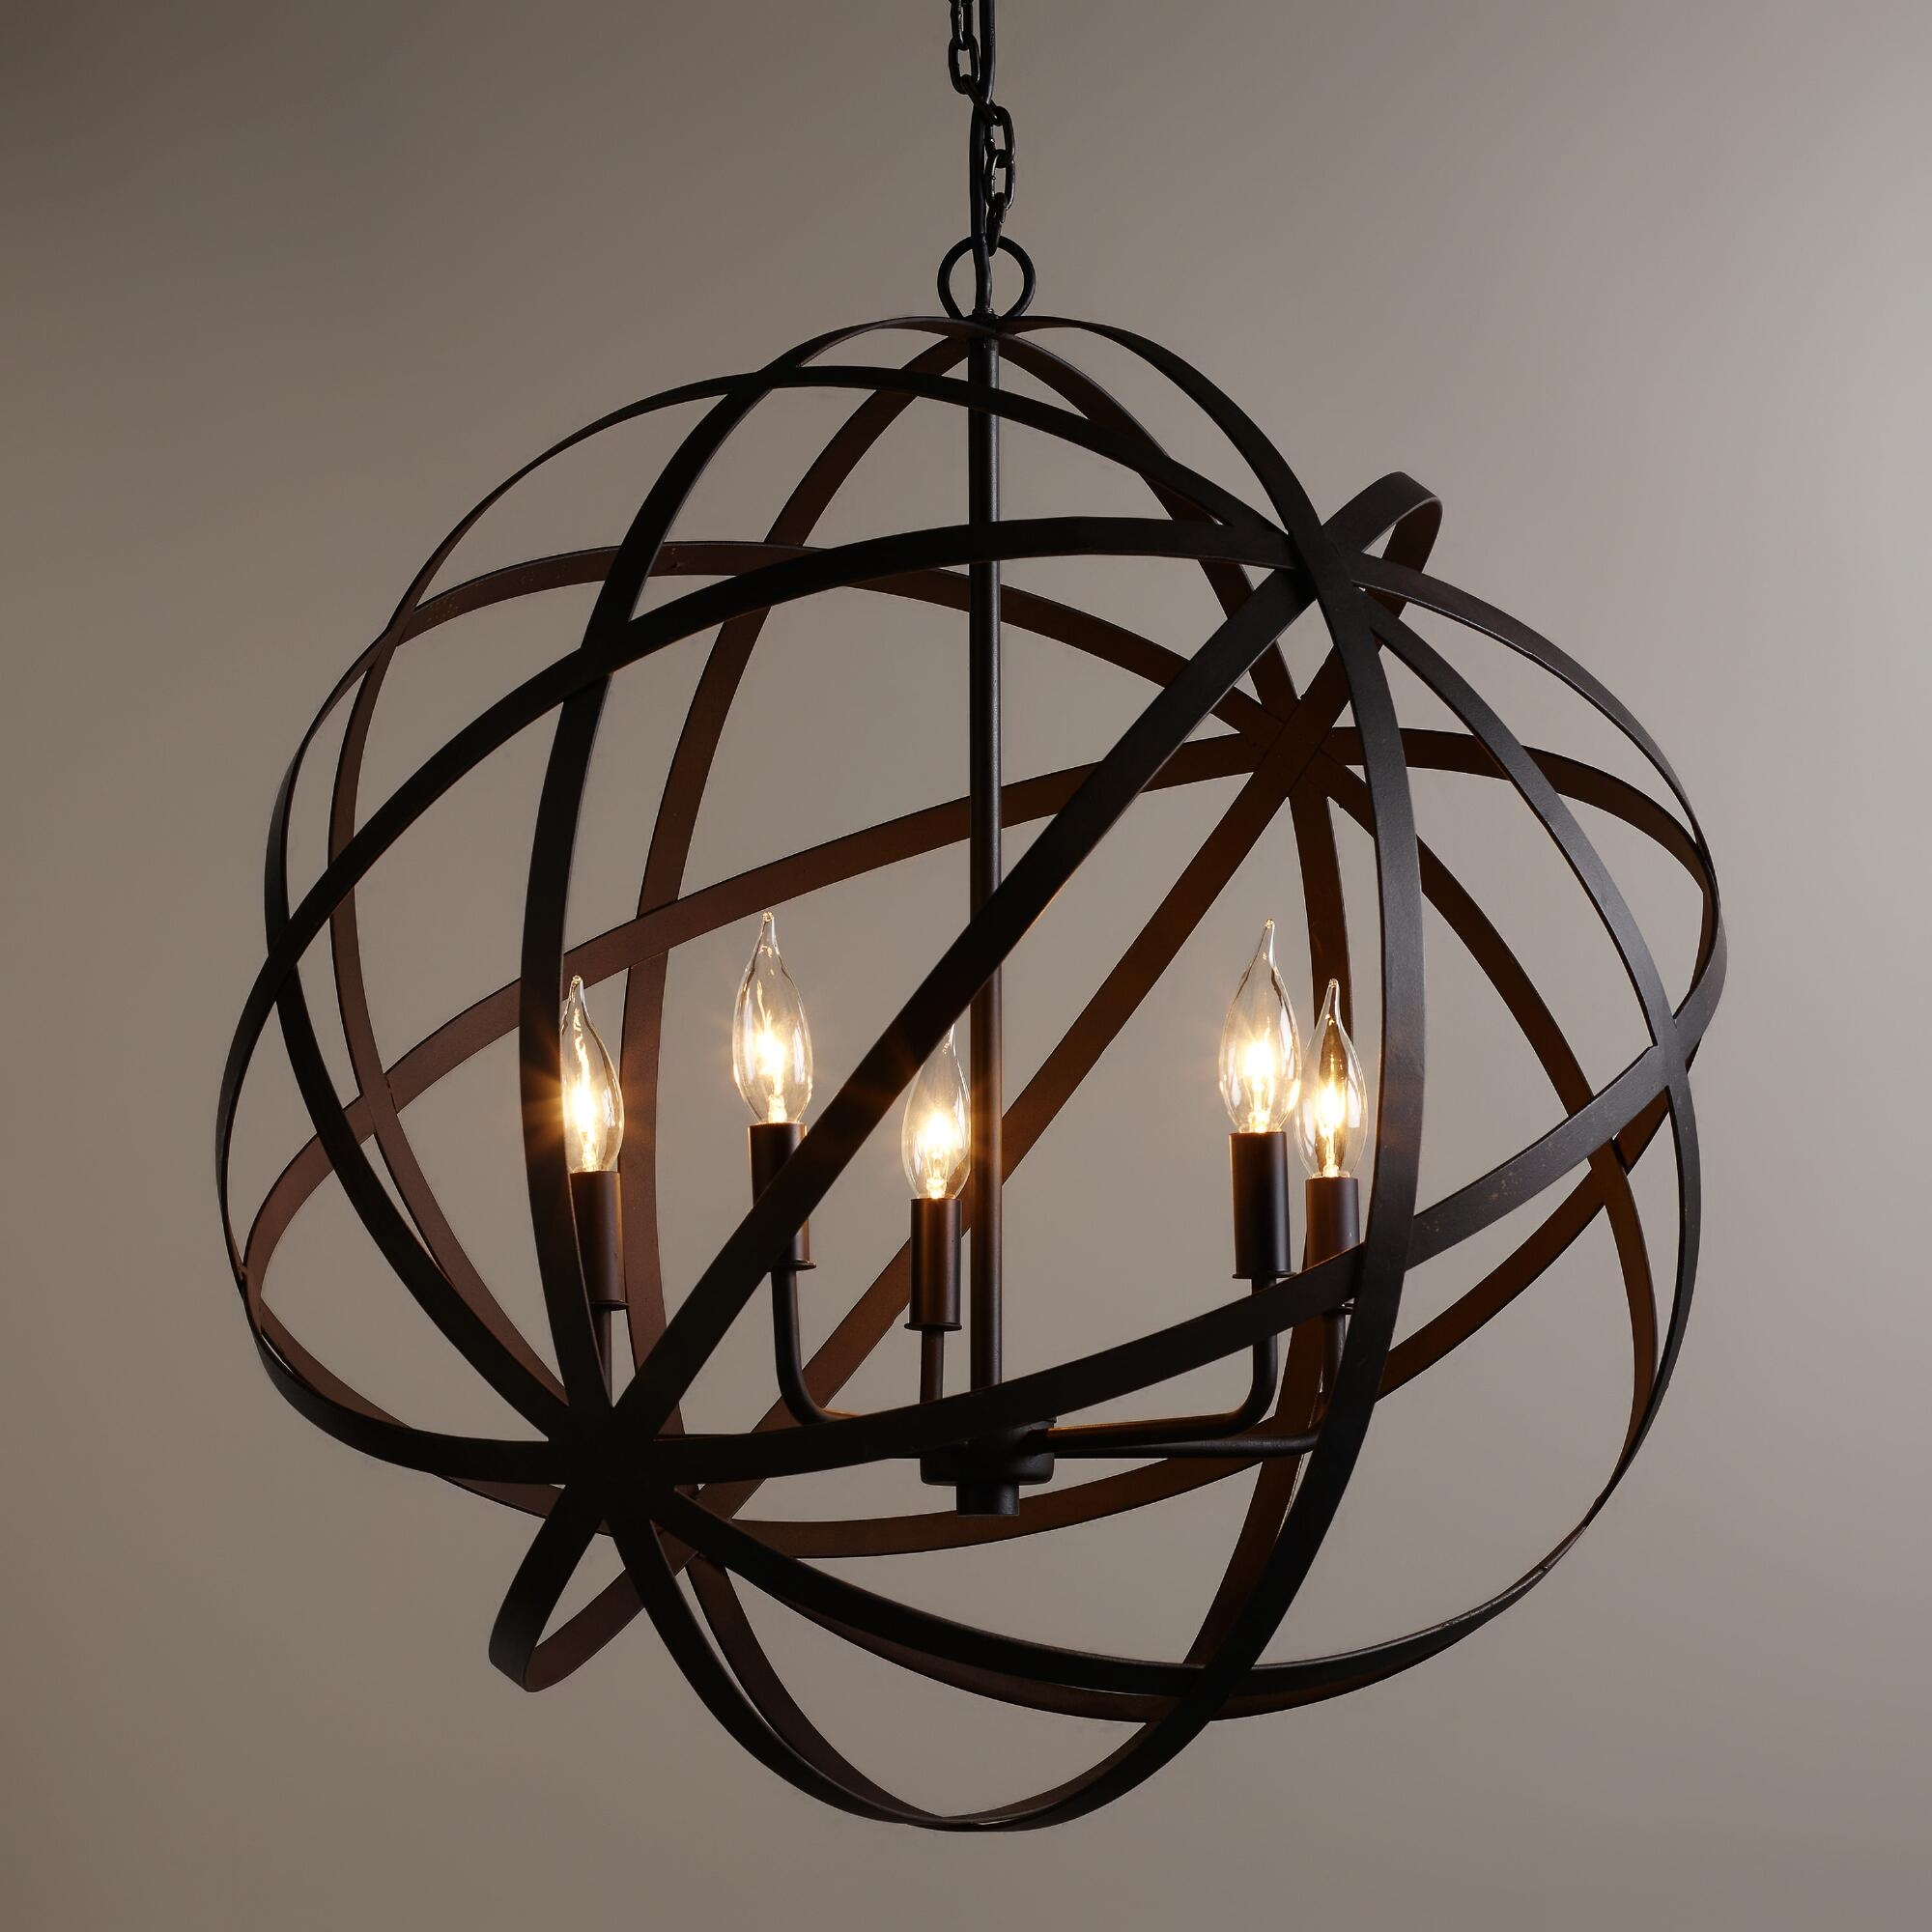 Orb Chandelier Beautiful Home Design For Orb Chandelier (Image 12 of 15)